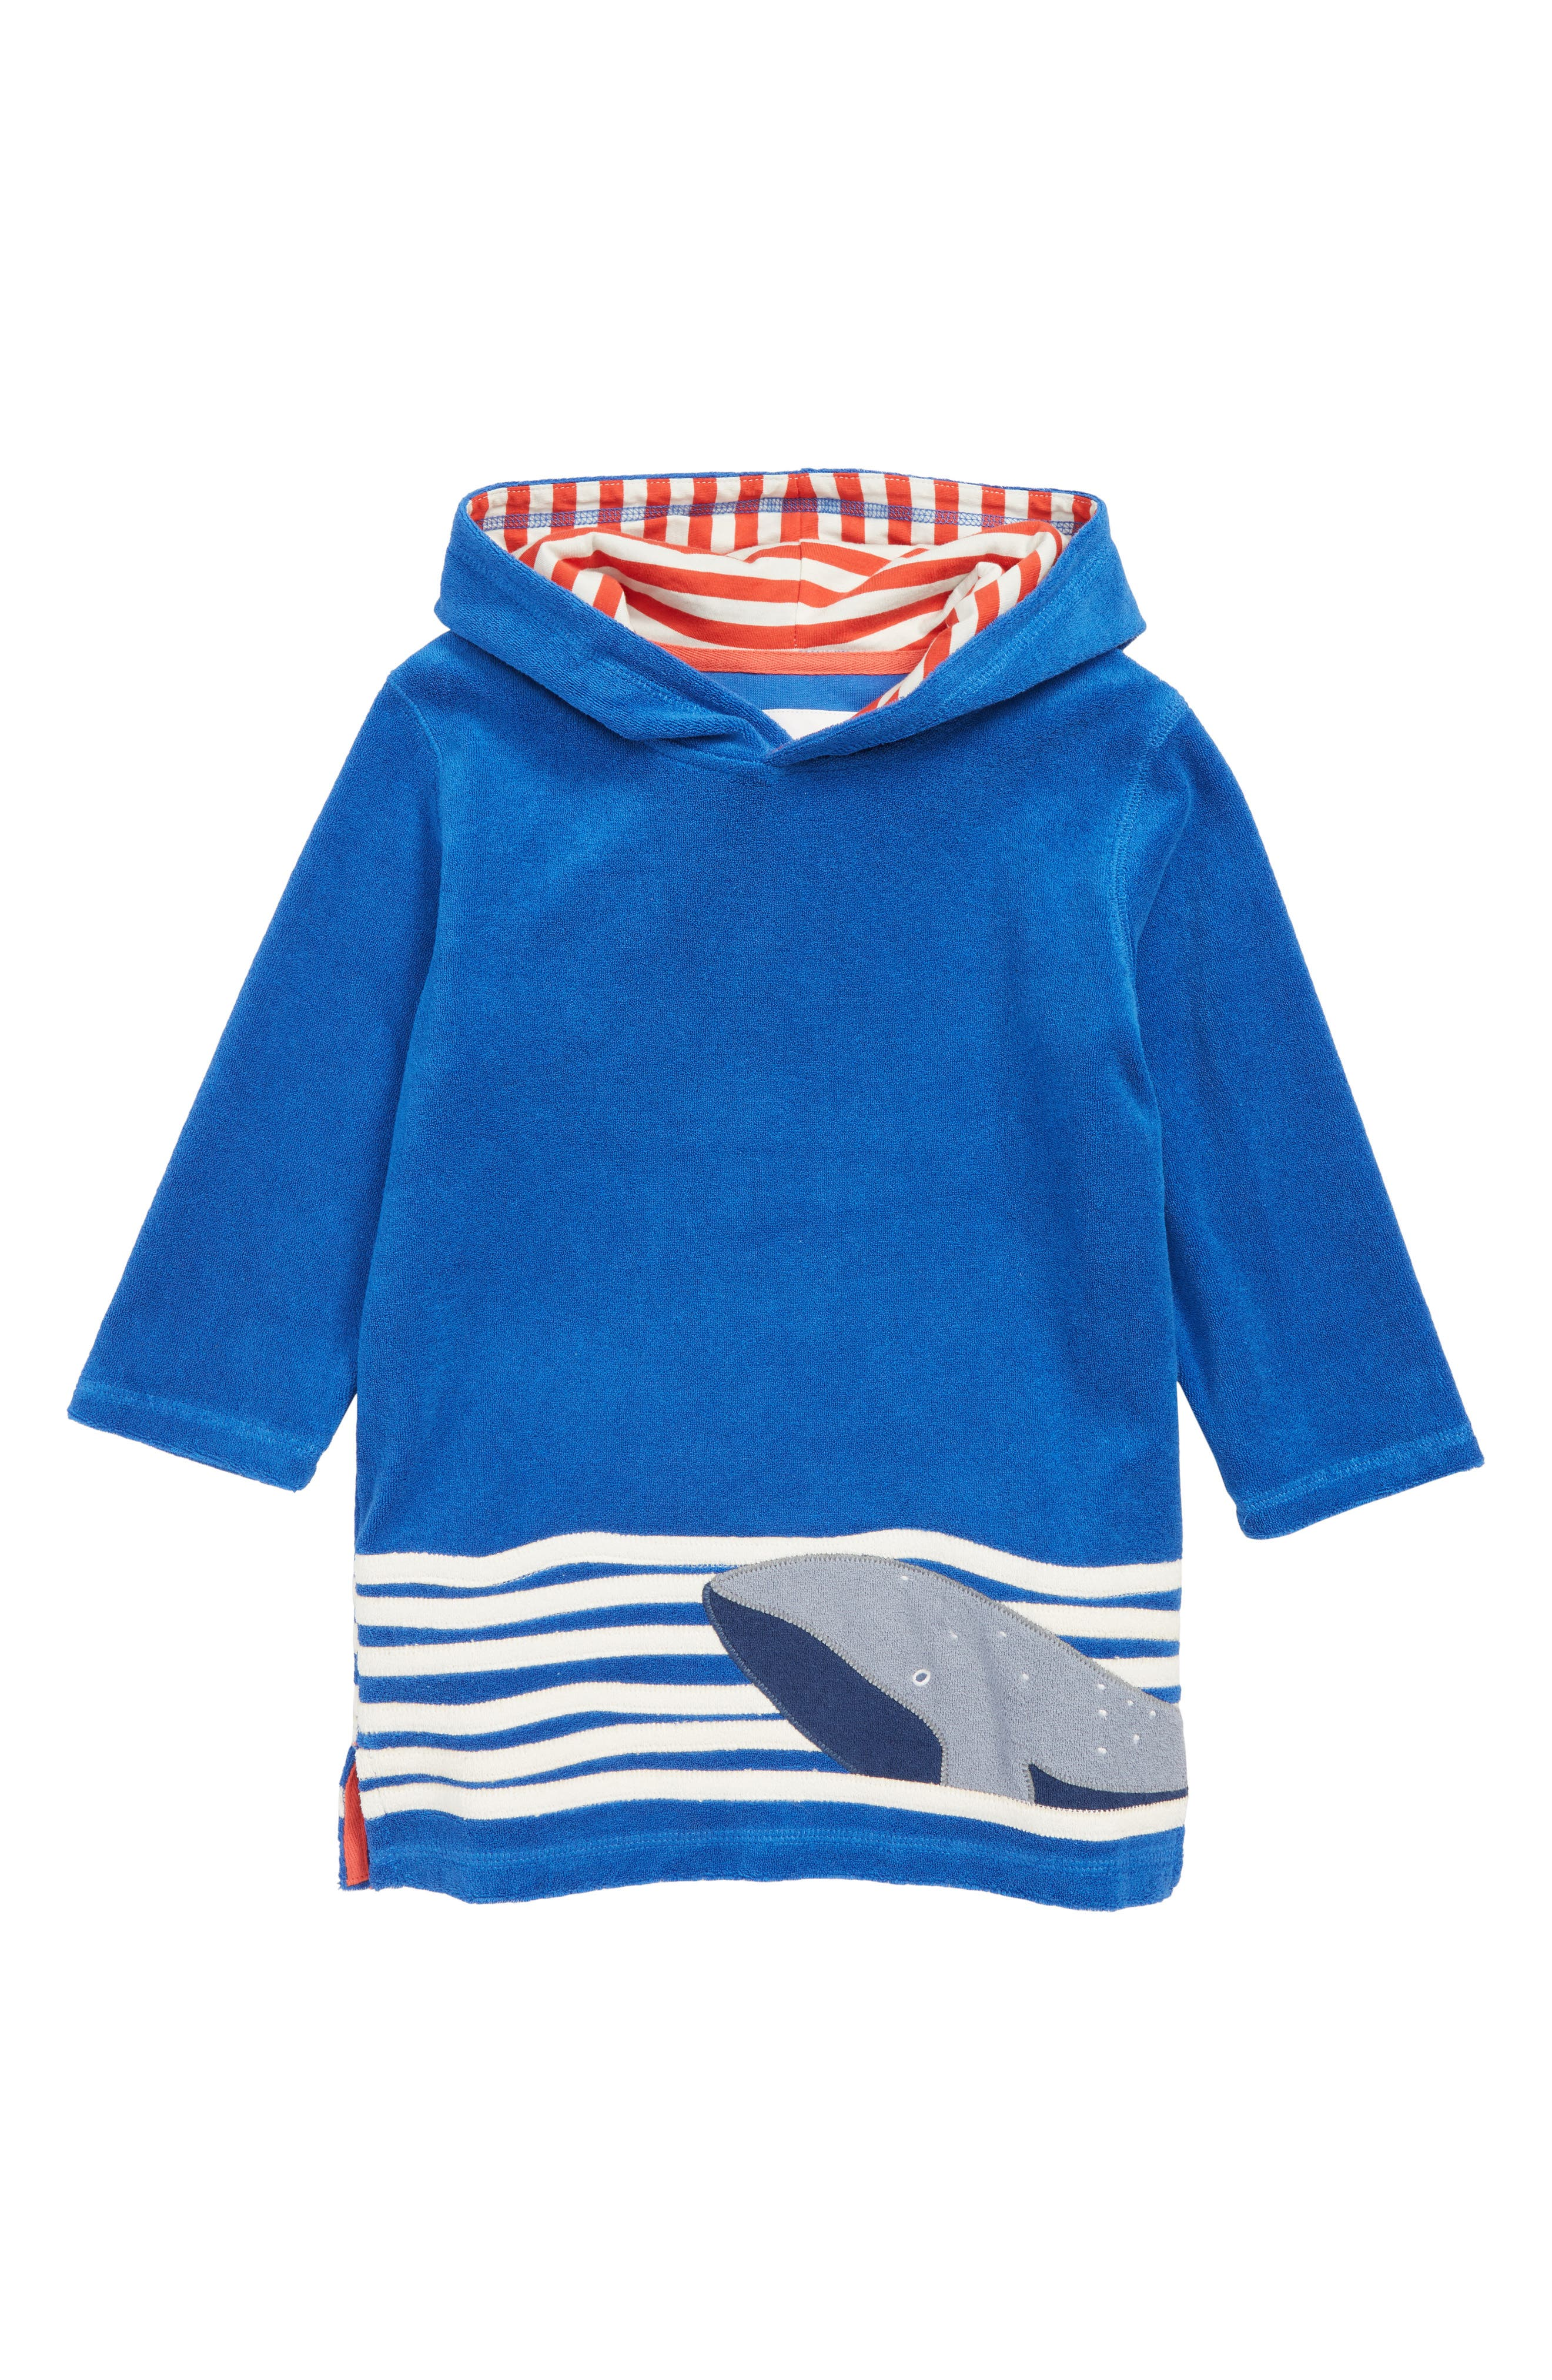 Toddler Boys Mini Boden Whale  Towelling Hooded CoverUp Poncho Size 34Y  Blue